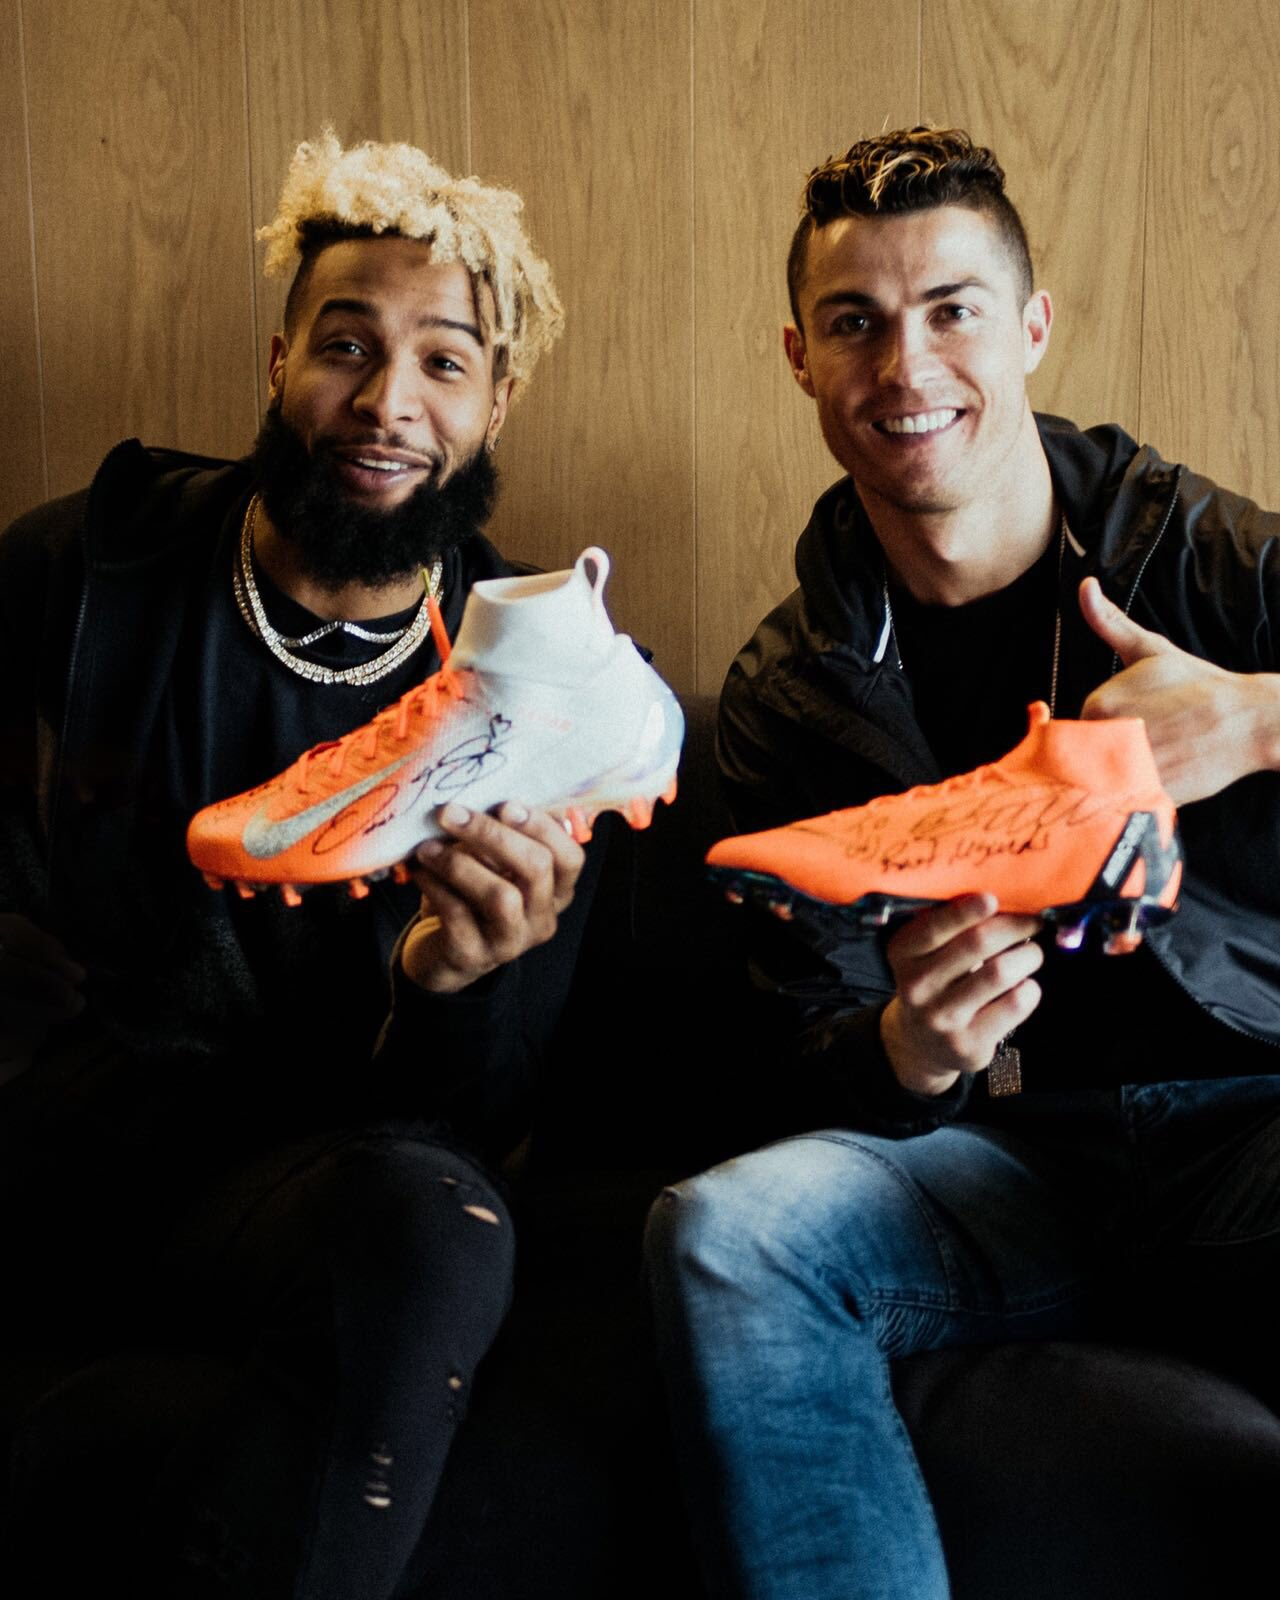 Fast meets Fast ⚡ Great to meet you brother! #bornmercurial #mercurial #nikefootball https://t.co/Kfp3acbLRm